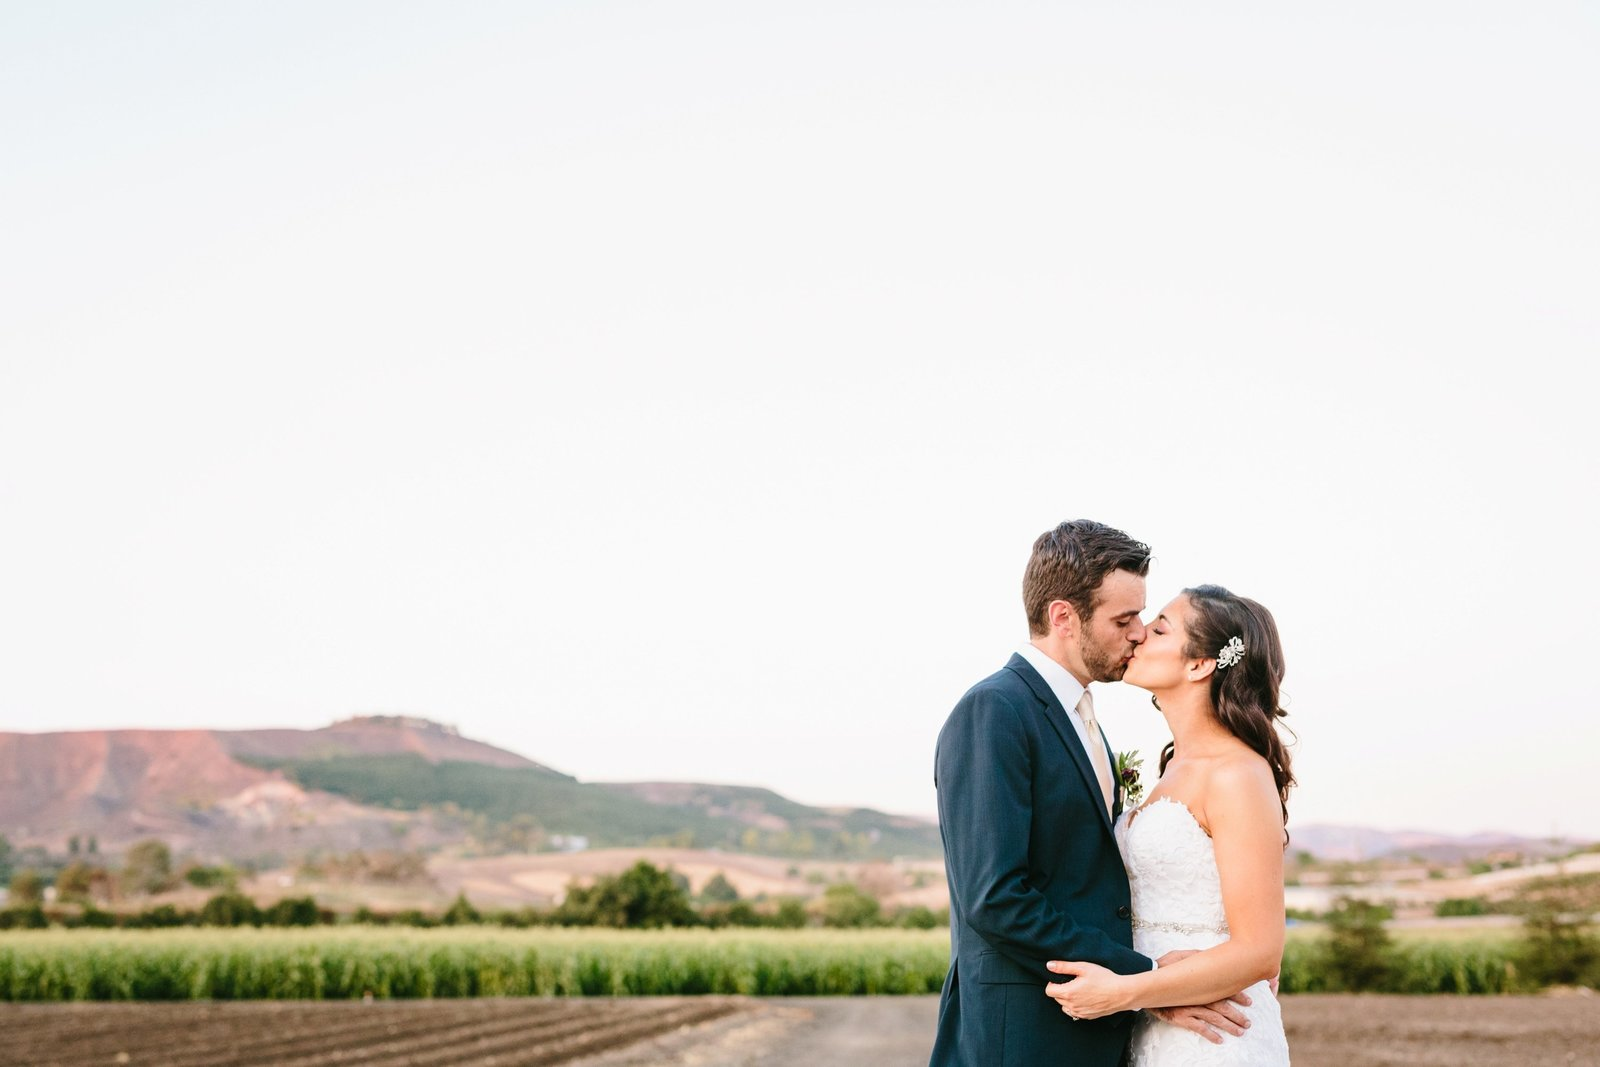 Wedding Photos-Jodee Debes Photography-117